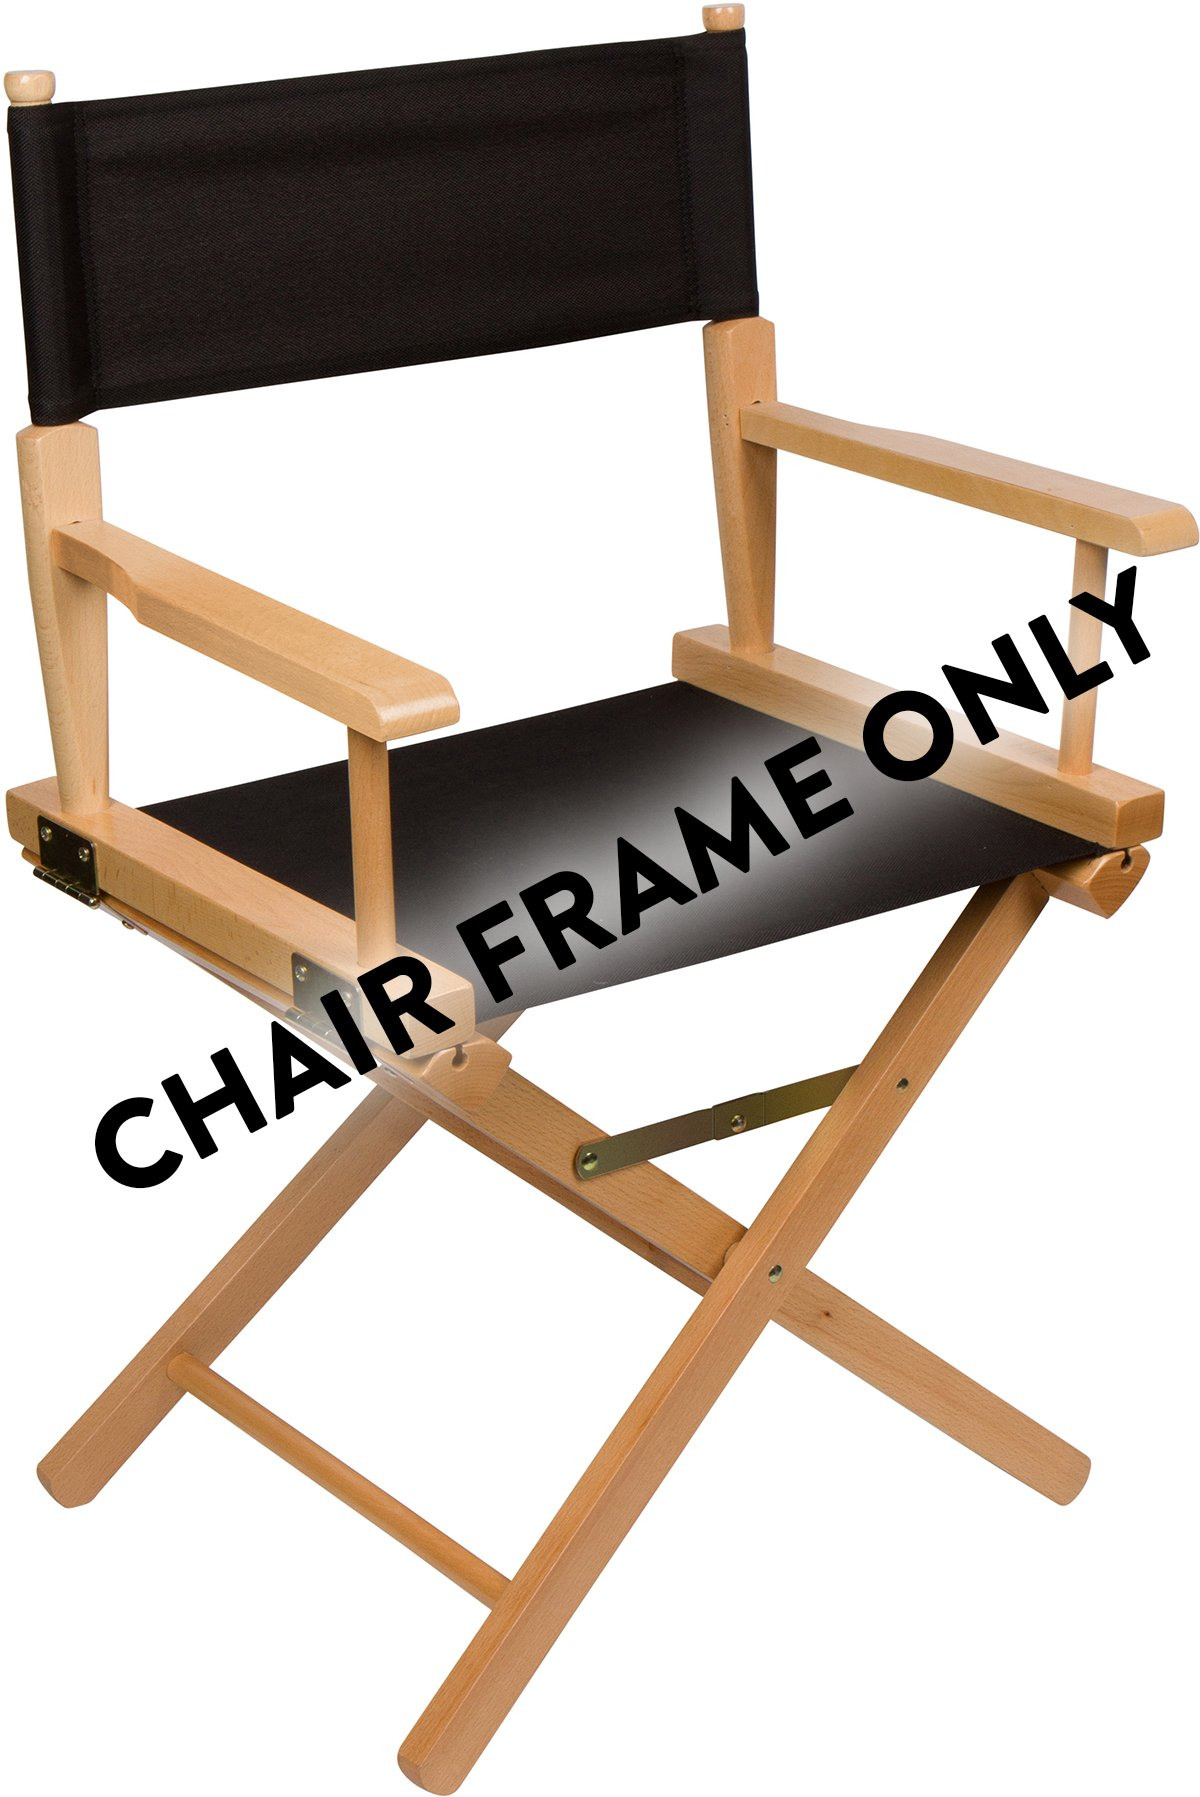 24'' Wood Frame Director Chair Body by Trademark Innovations (Light Wood)